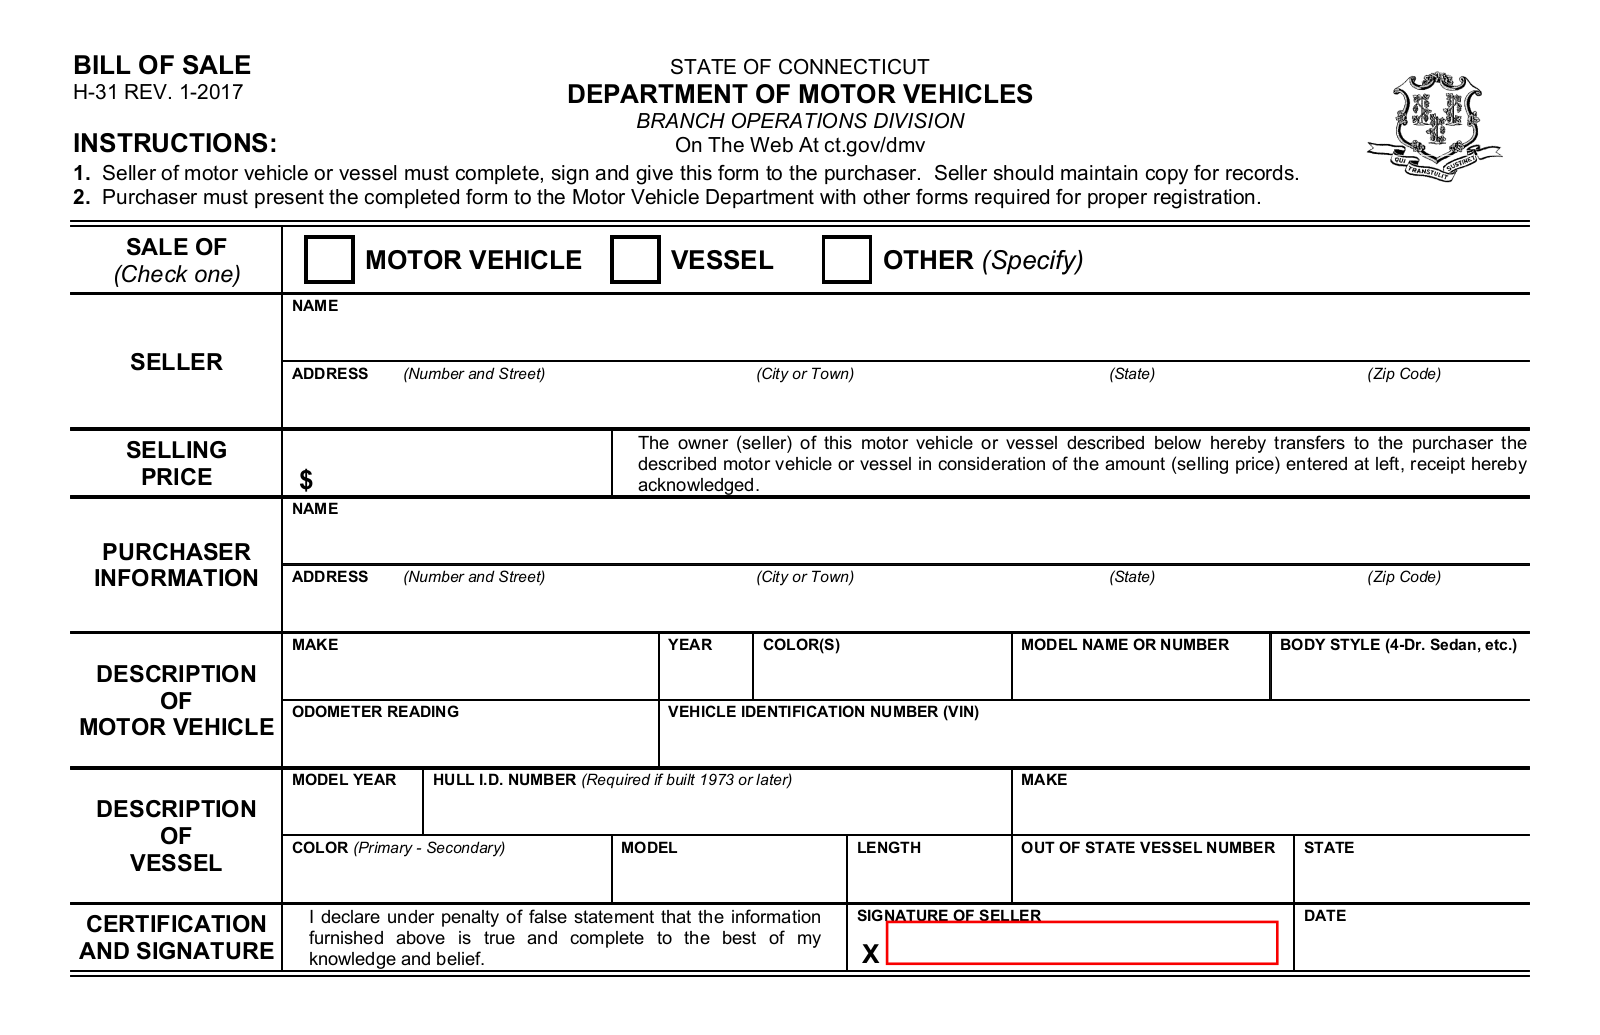 Bill Of Sale Nevada >> Connecticut Vehicle/Vessel Bill of Sale   Form H-31   eForms – Free Fillable Forms